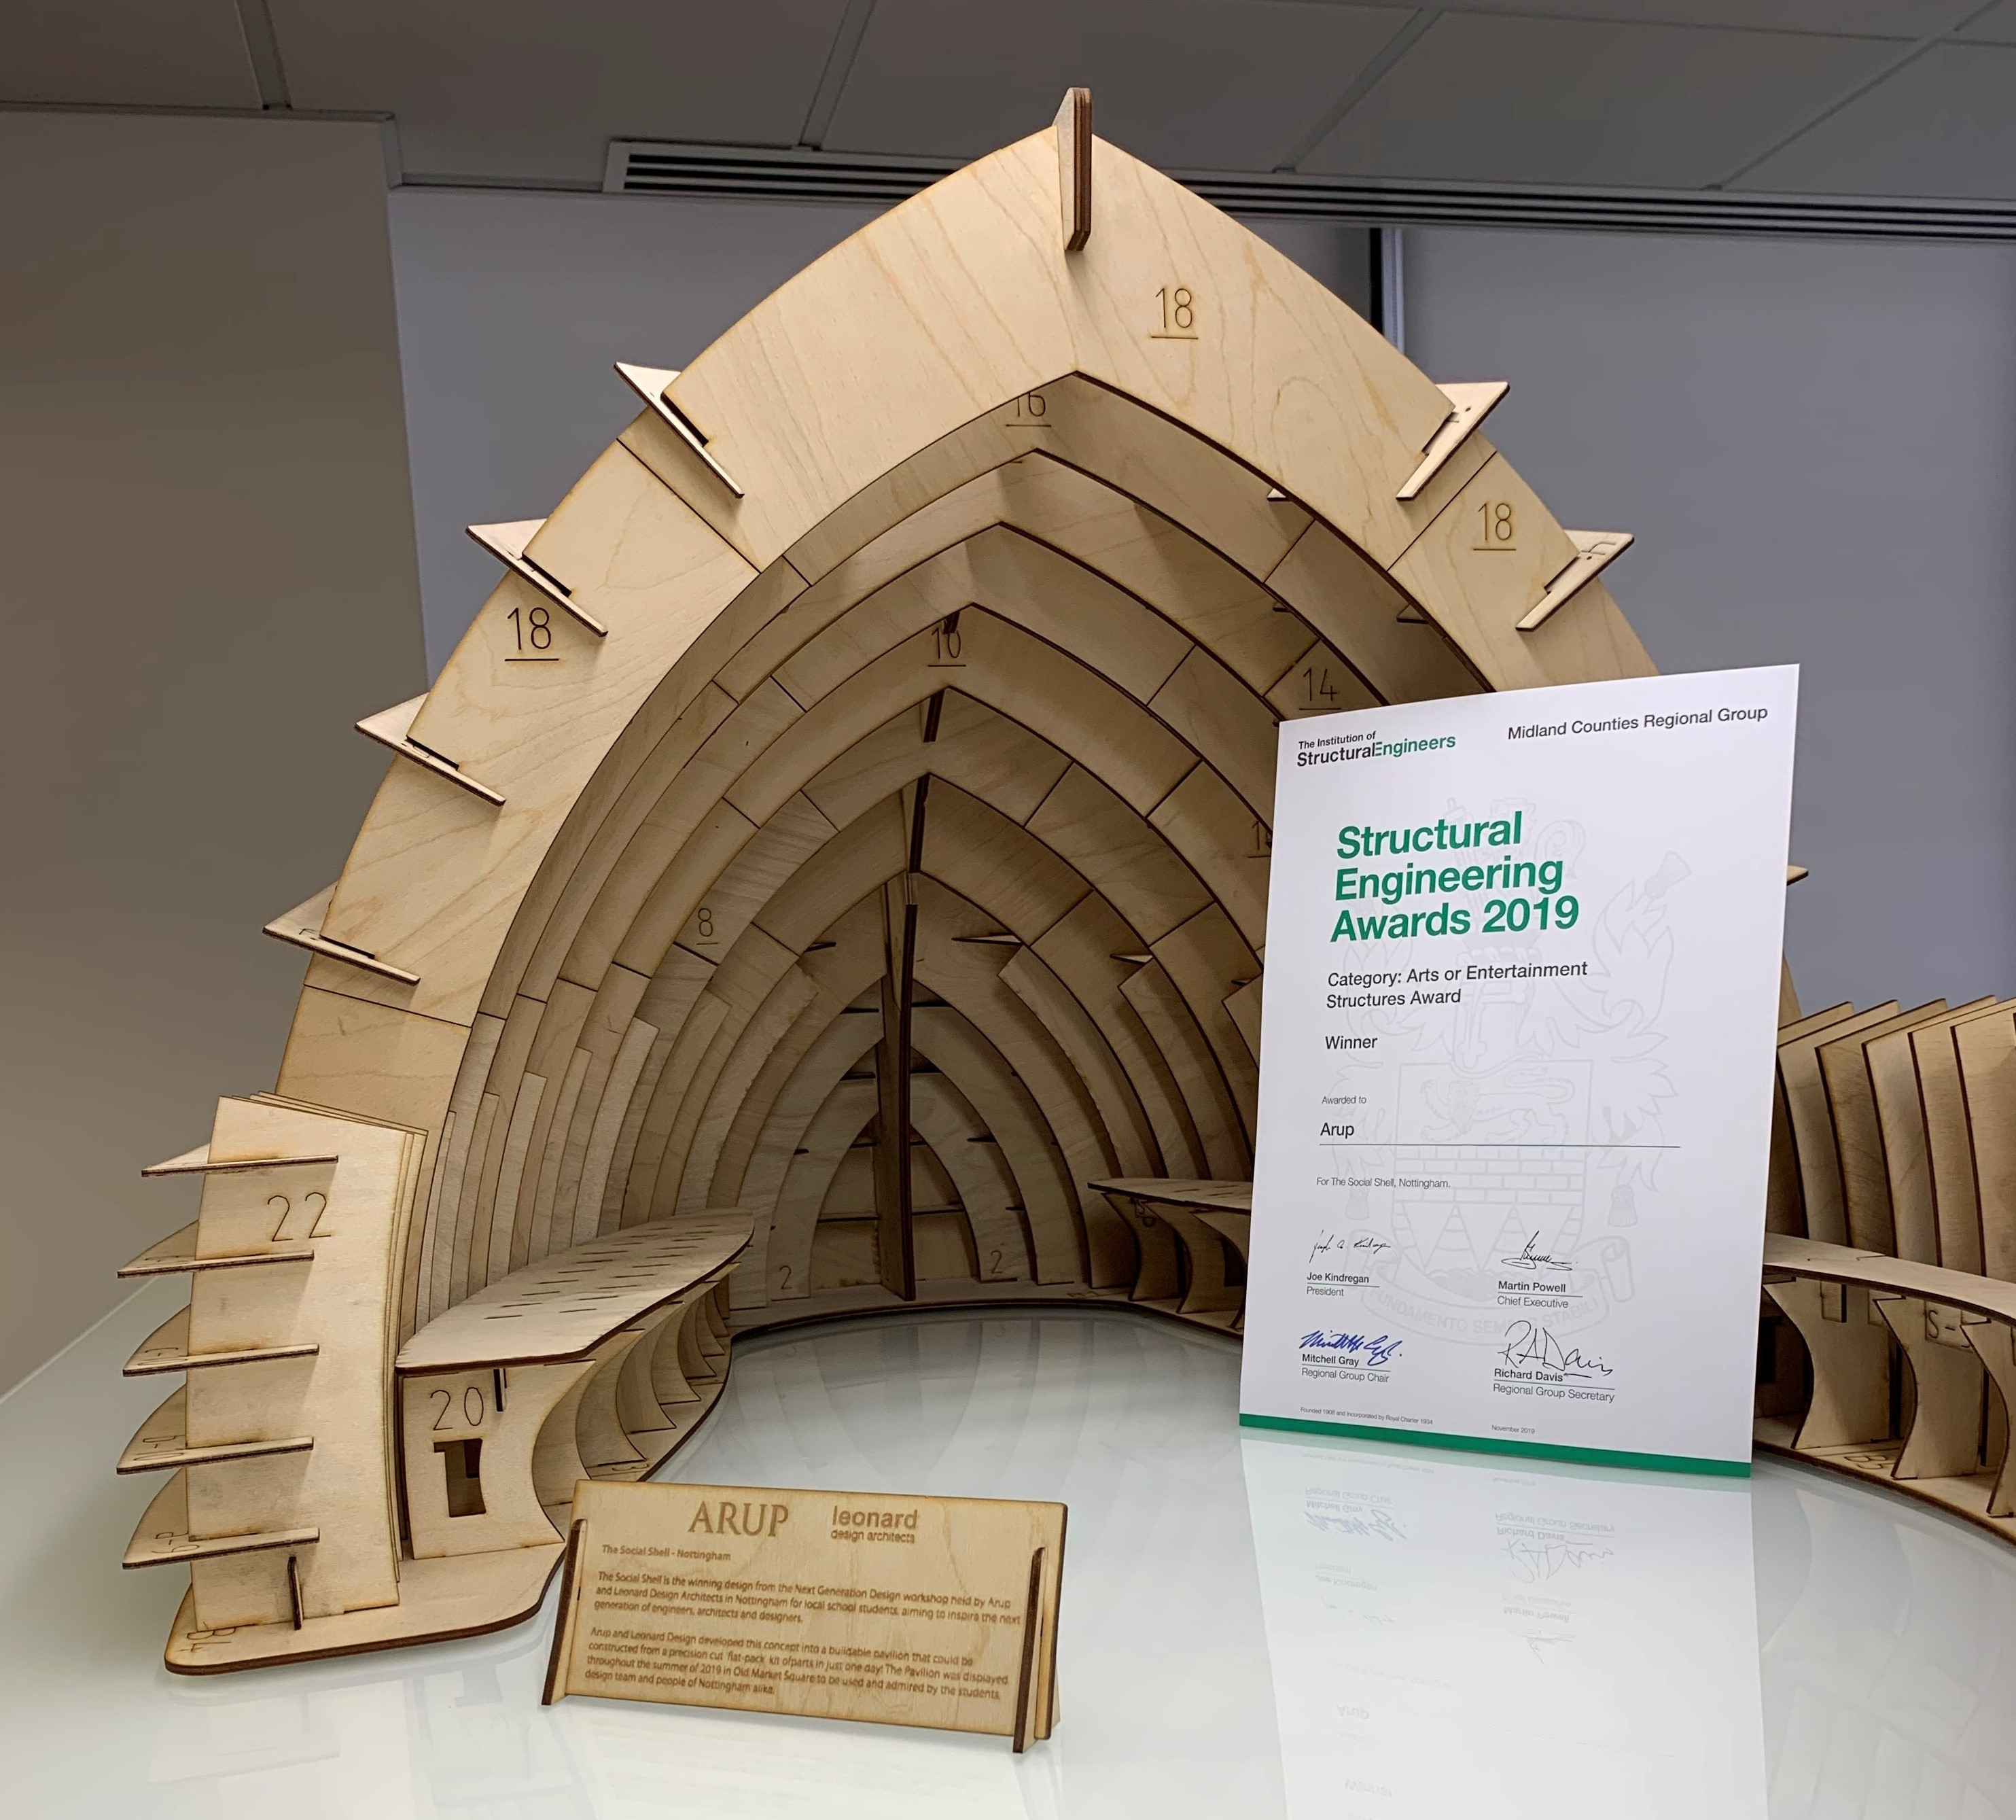 Structural Engineering Awards 2019